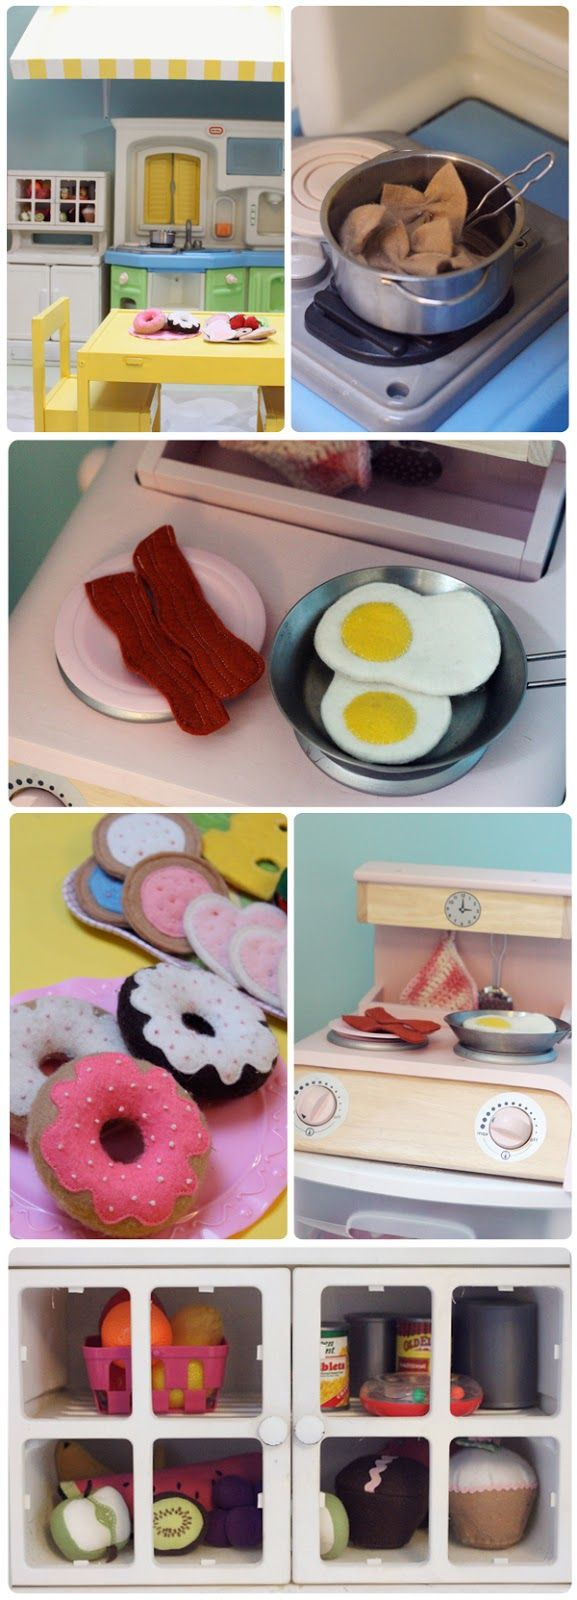 Felt food- fun and CHEAP...:The Busy Budgeting Mama: Our Playroom Reveal - DIY Details & Storage Solutions!: